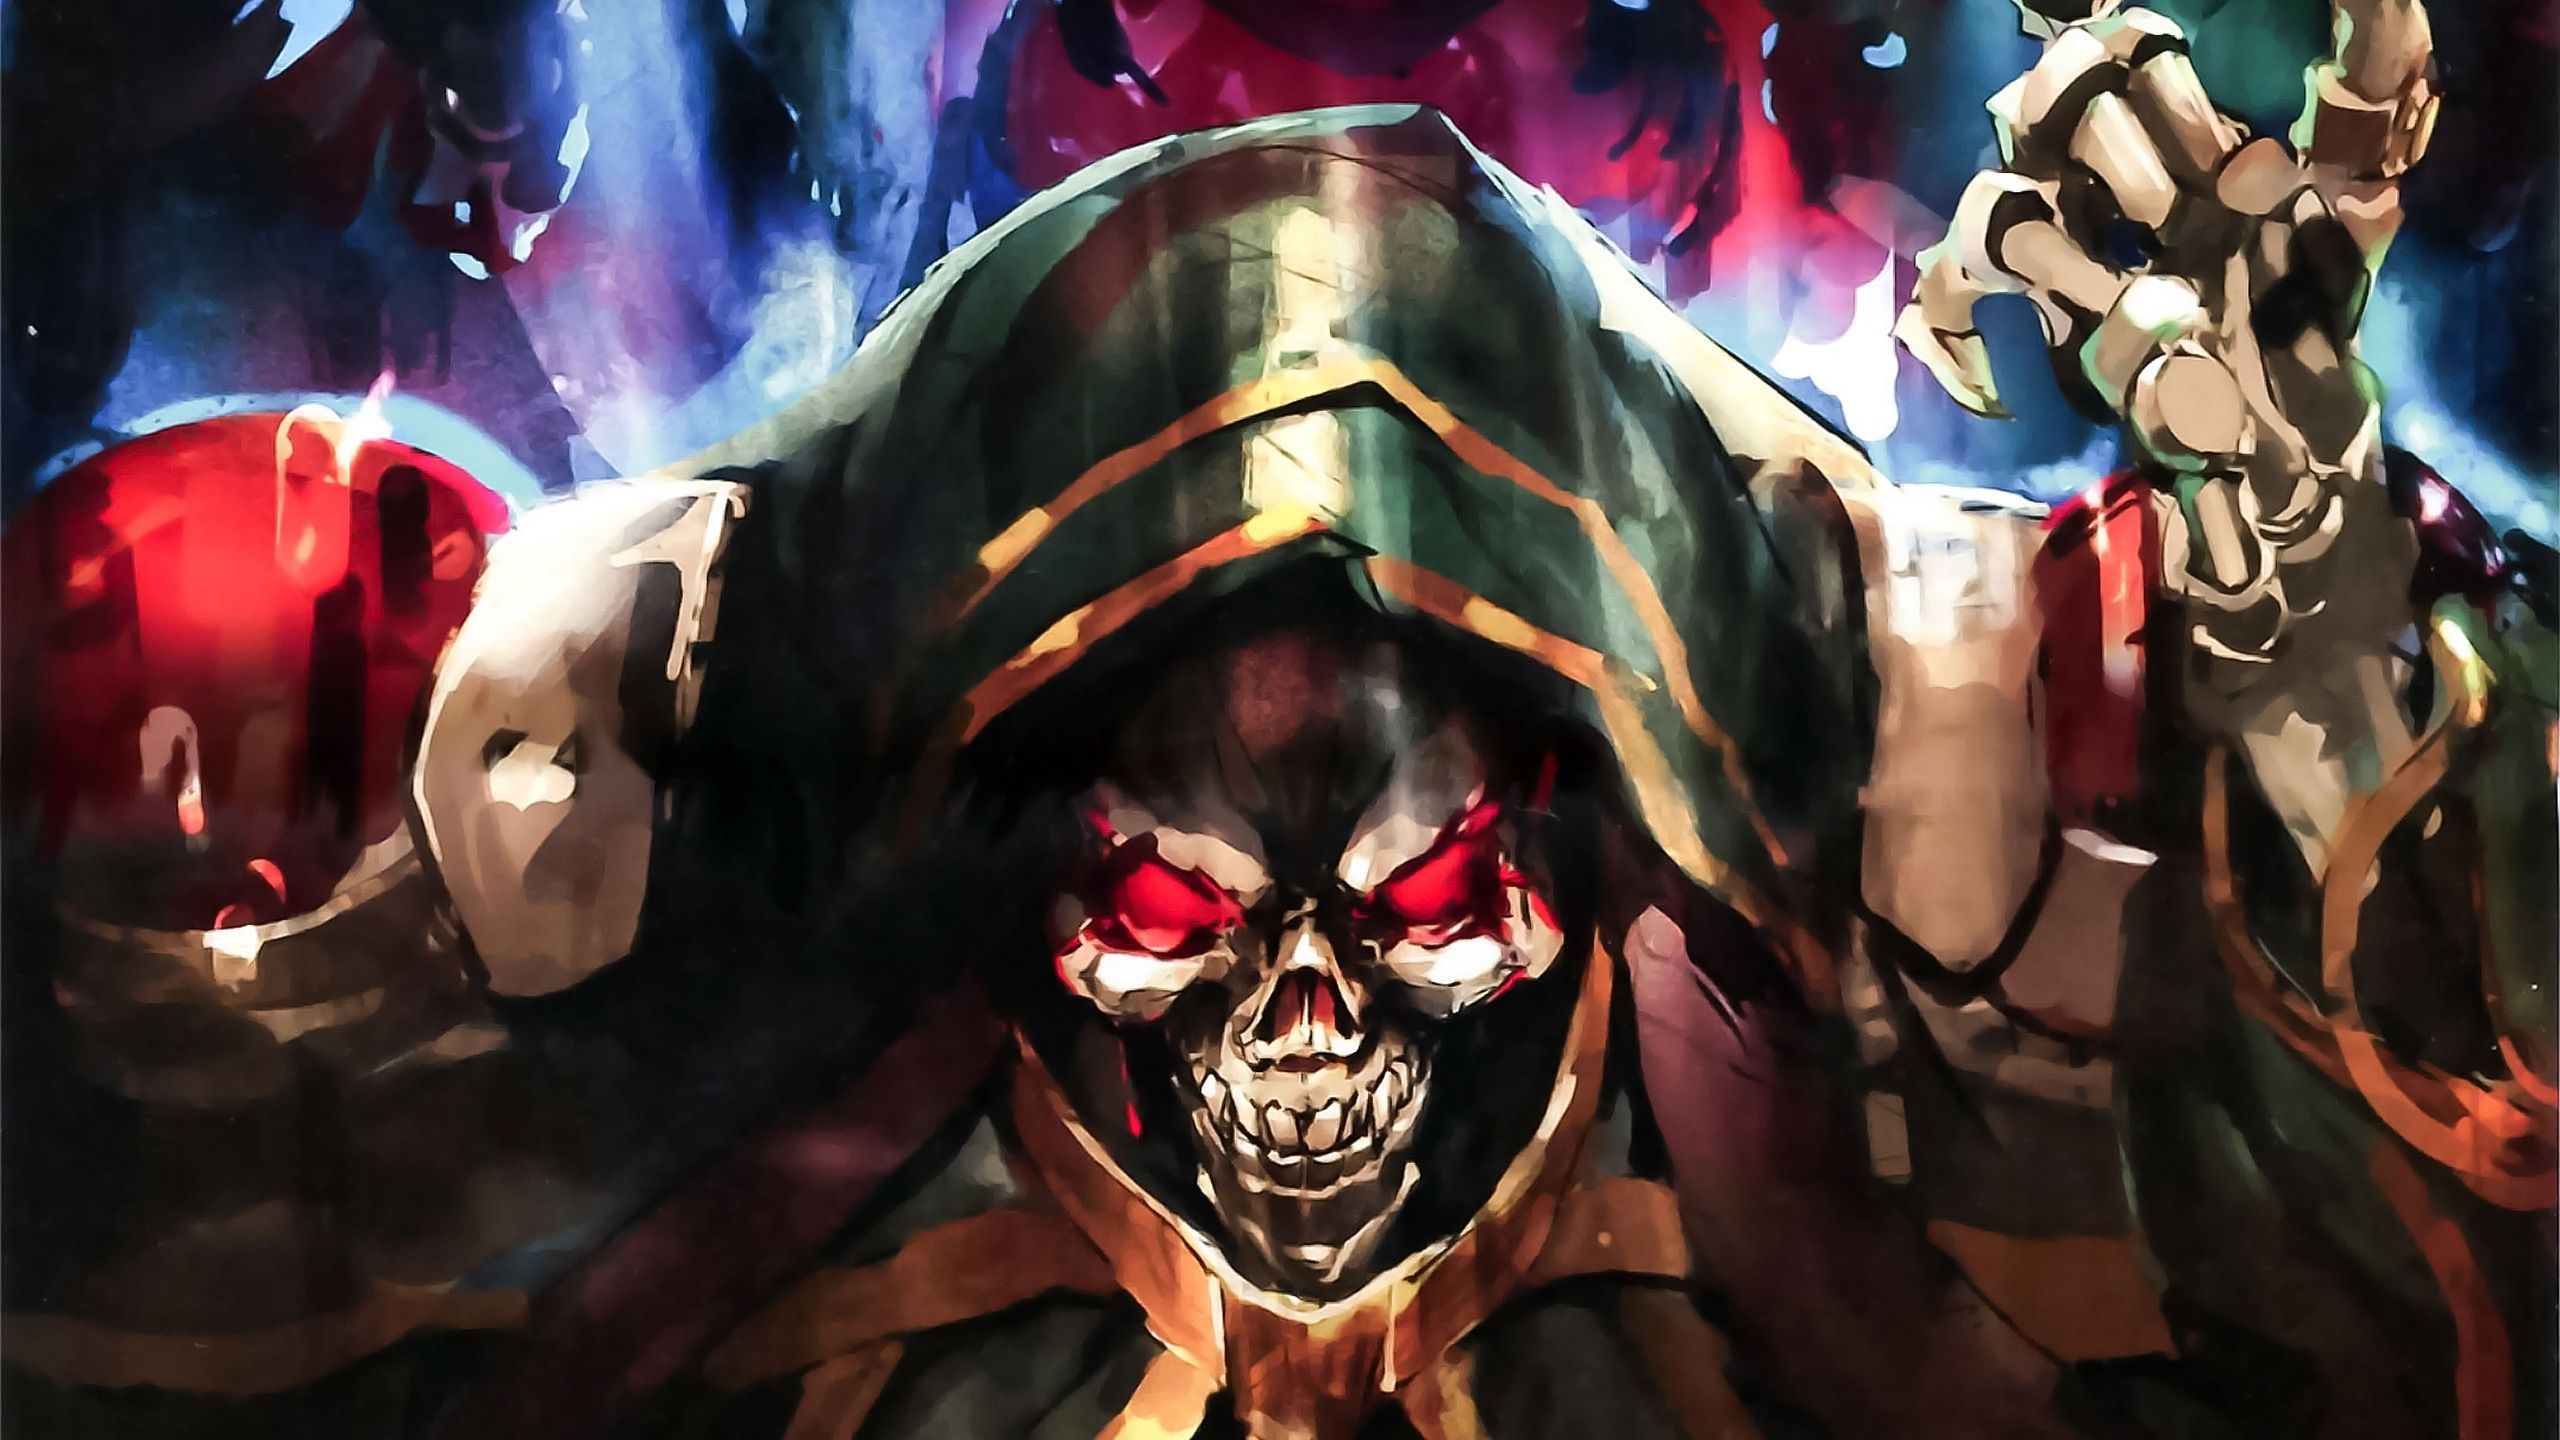 Overlord Wallpapers Top Free Overlord Backgrounds Wallpaperaccess